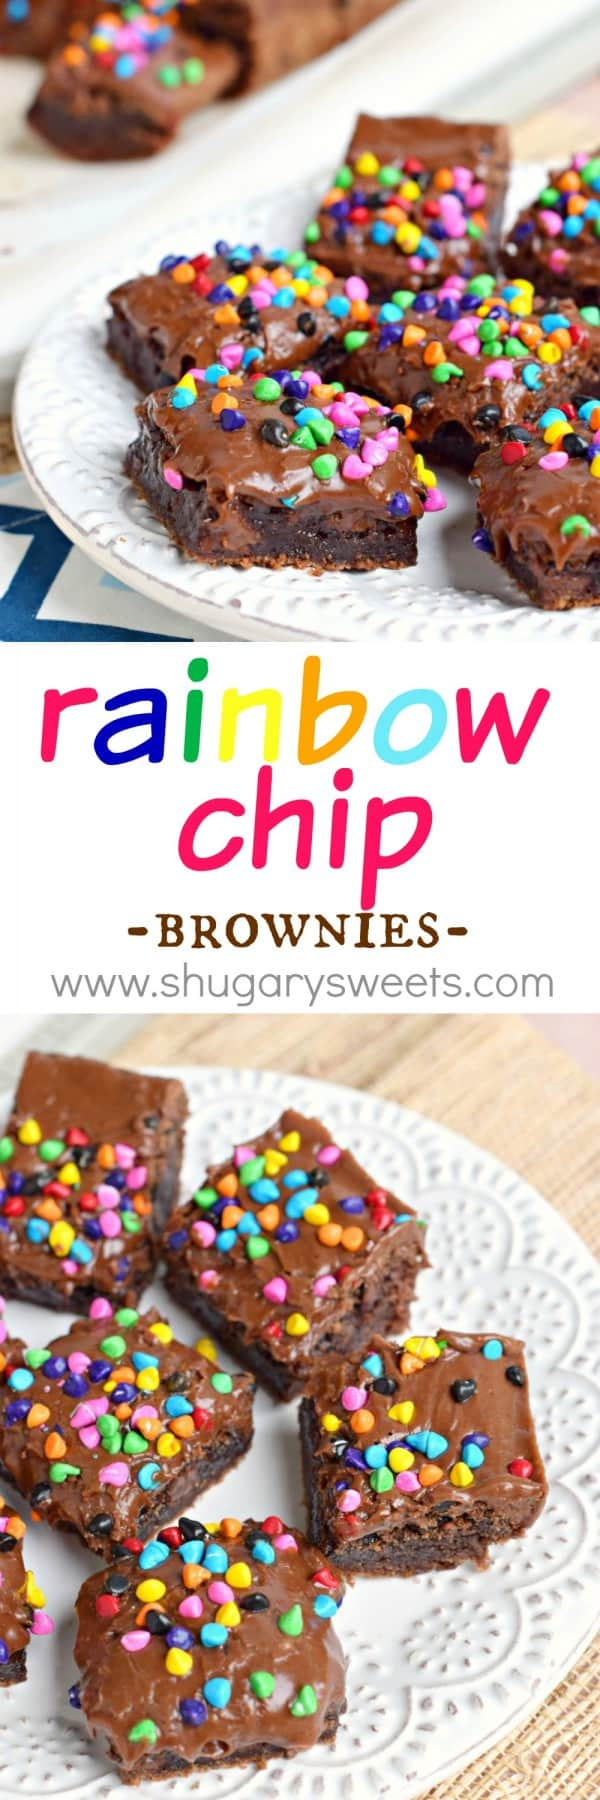 These Rainbow Chip Brownies are made using the best homemade buttermilk brownie recipe! Move over Cosmic Brownies from Little Debbie...these are too delicious to compare!